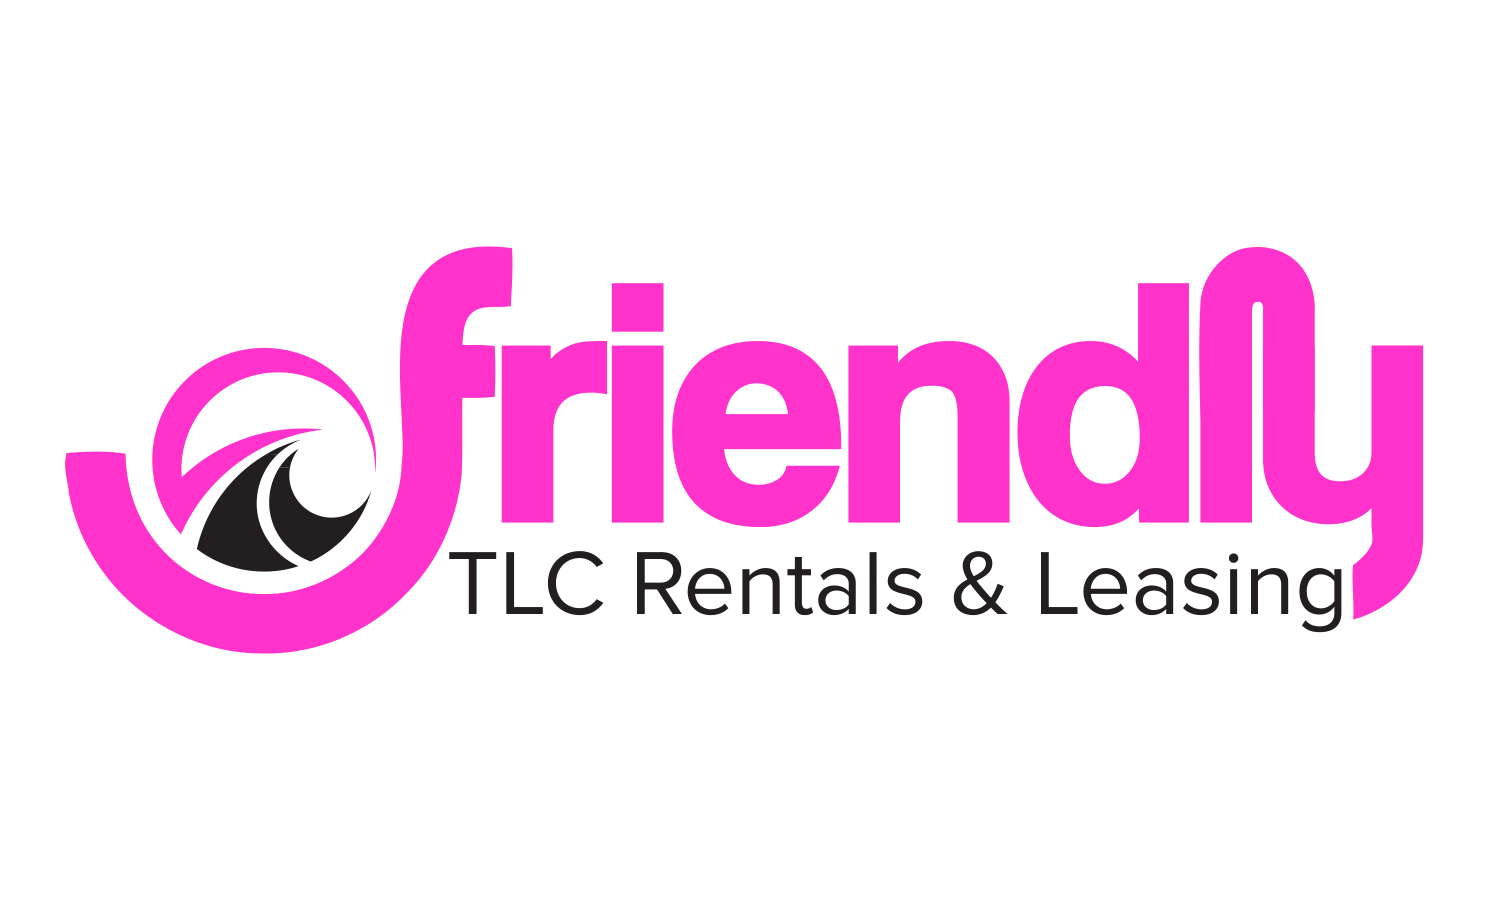 Friendly TLC Rentals & Leasing